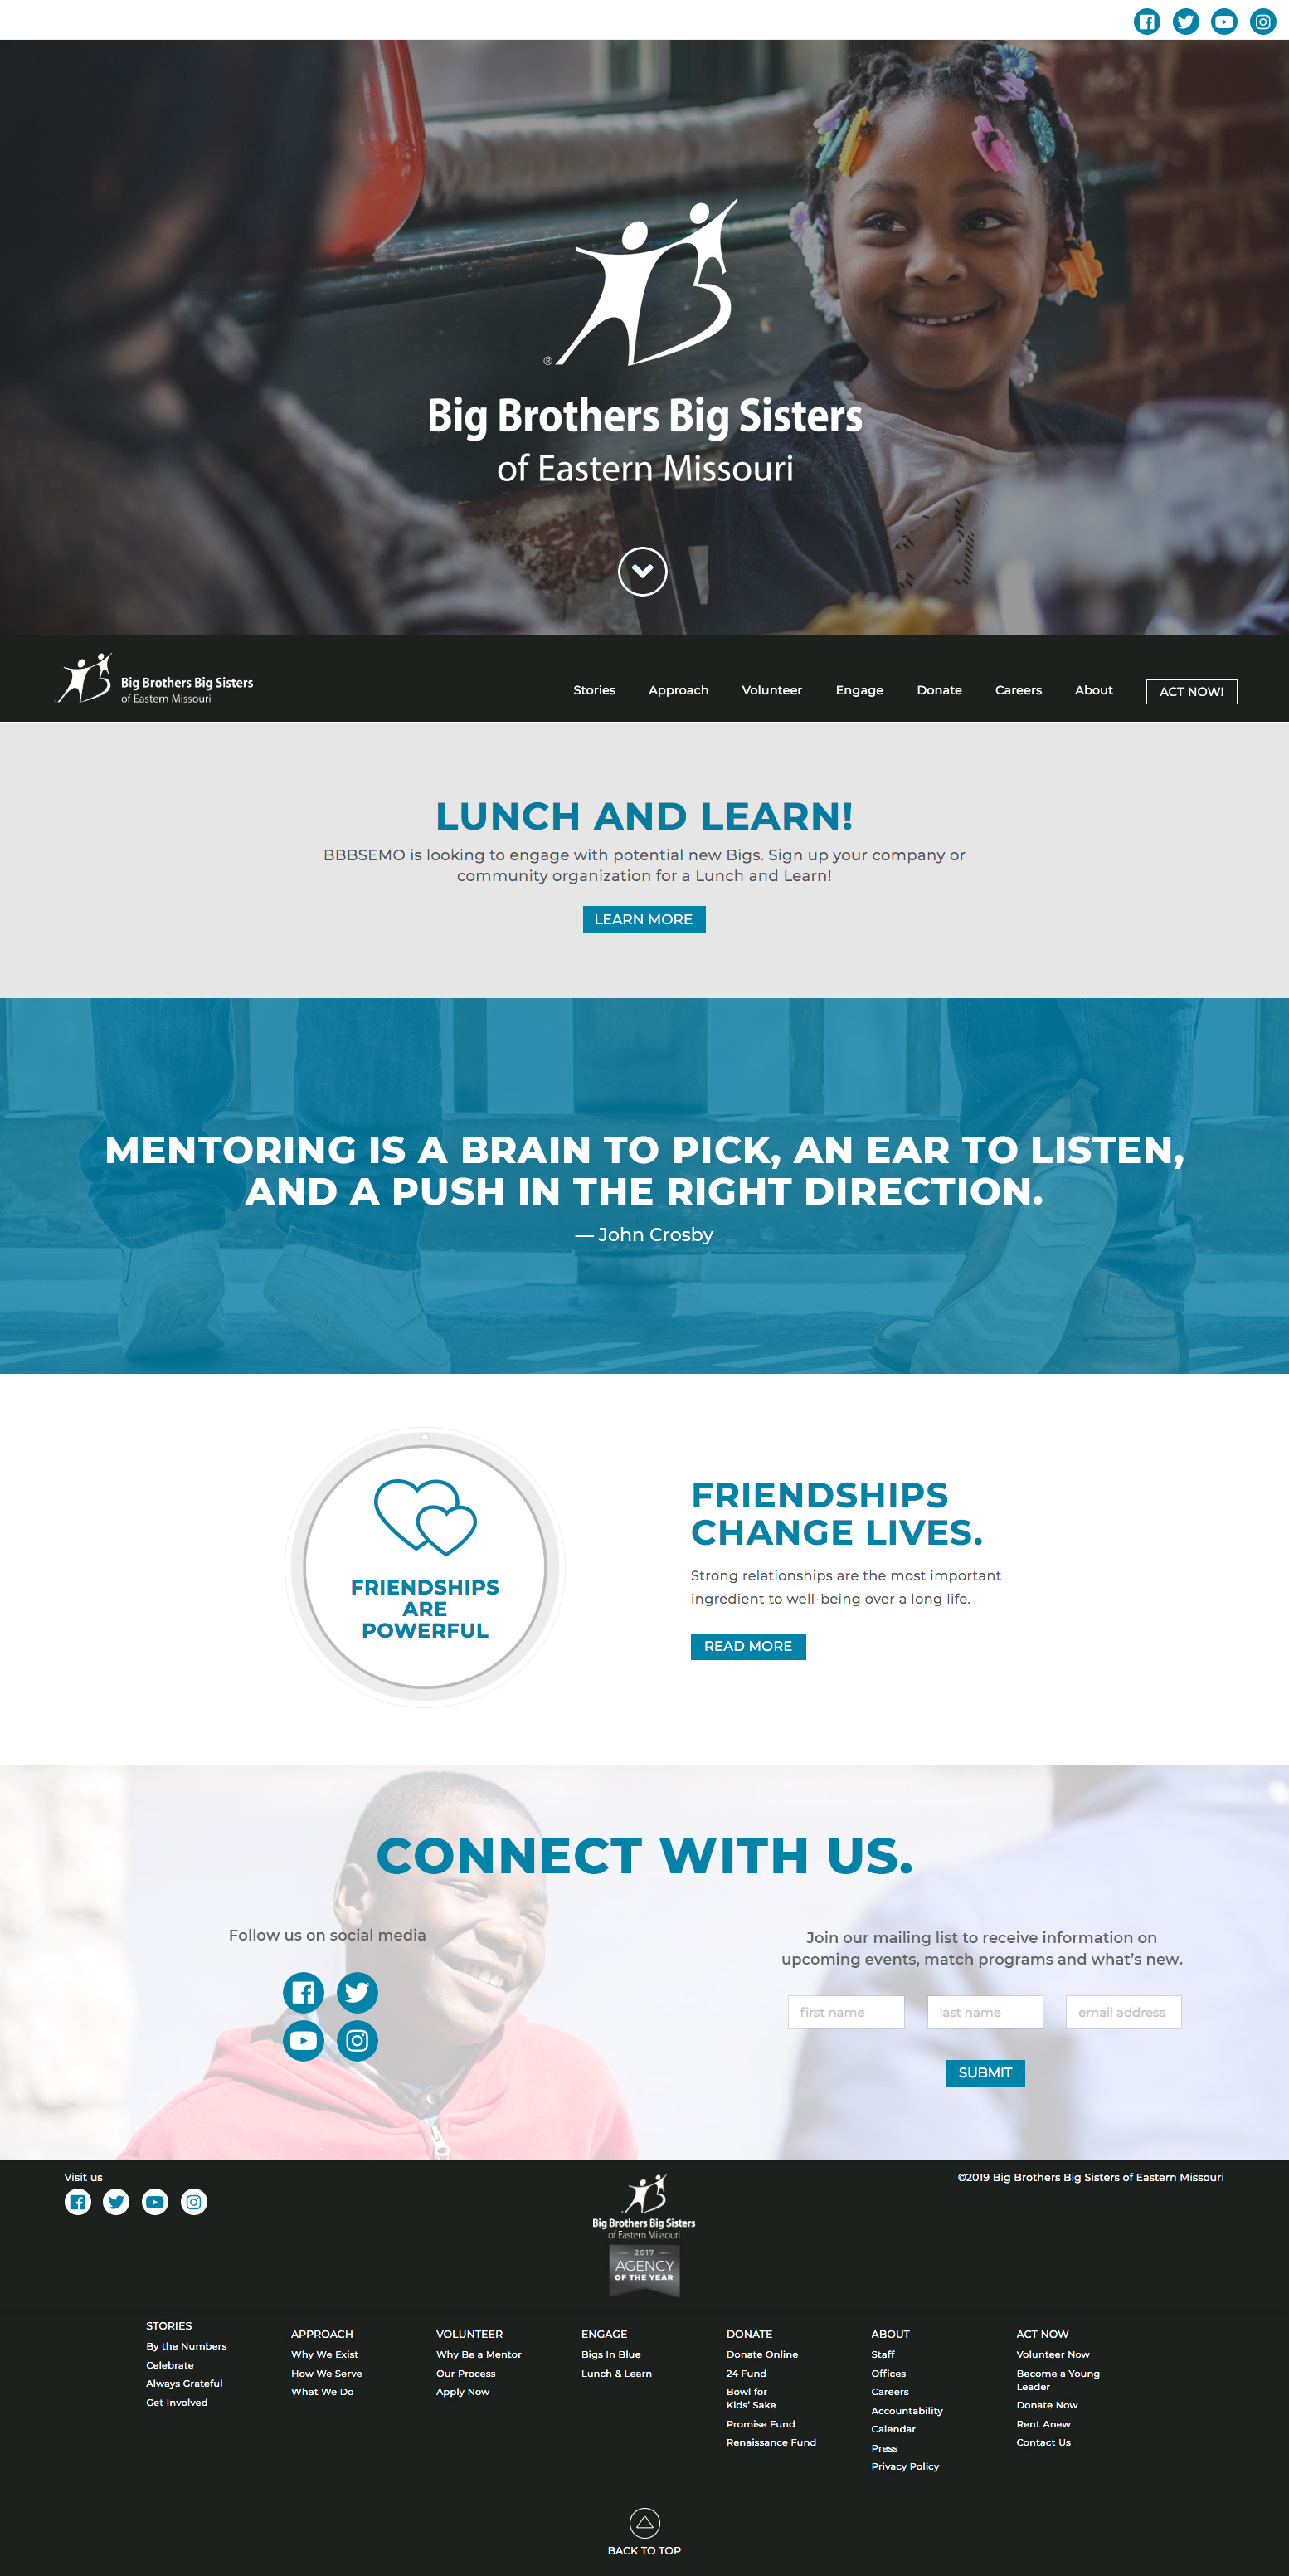 Big Brothers Big Sisters of Eastern Missouri website home page